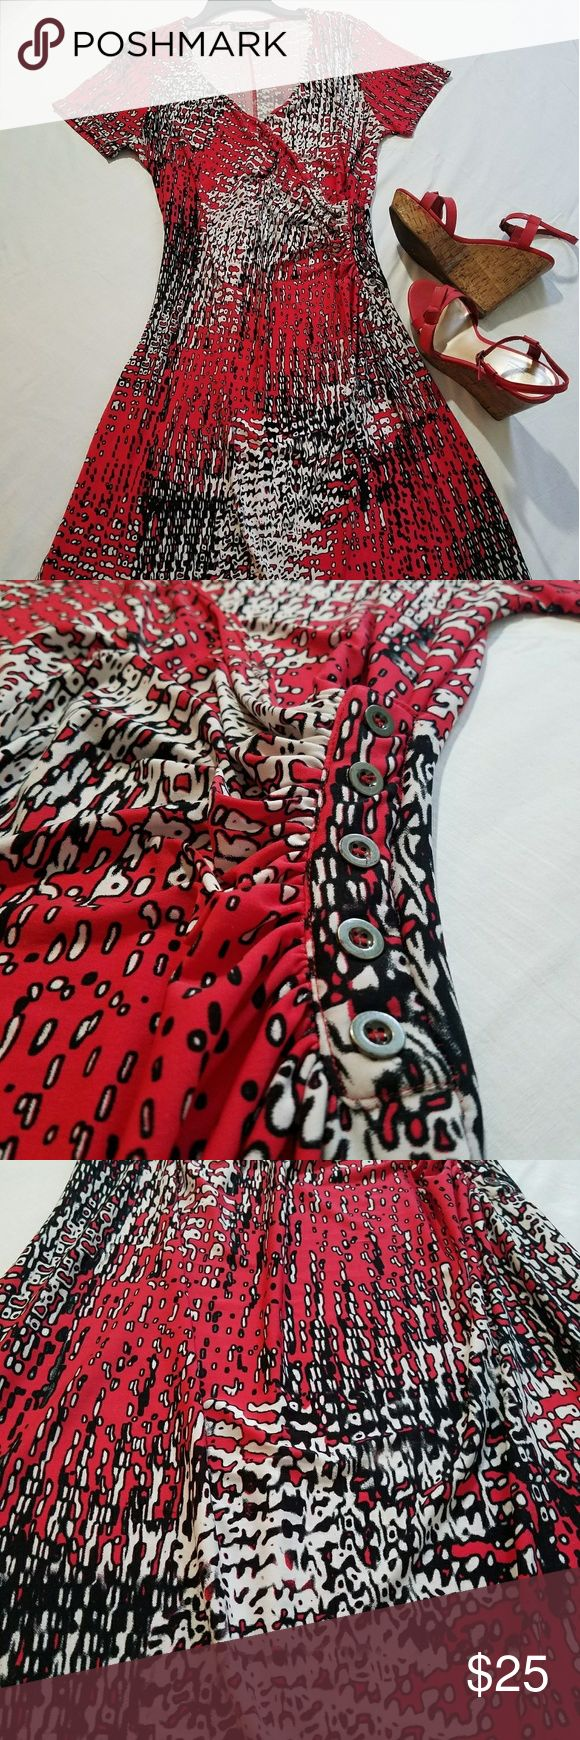 "Mlle Gabrielle dress SZL Red, black and white print faux wrap dress by Mlle Gabrielle. Comfy and cute dress to wear for work or weekend play. The dress has gathered side with faux buttons. Short sleeve. Very stretchy. Knee length. Measurements are 42"" from shoulder to hem. Worn a few times and still in great condition. Mlle Gabrielle  Dresses"